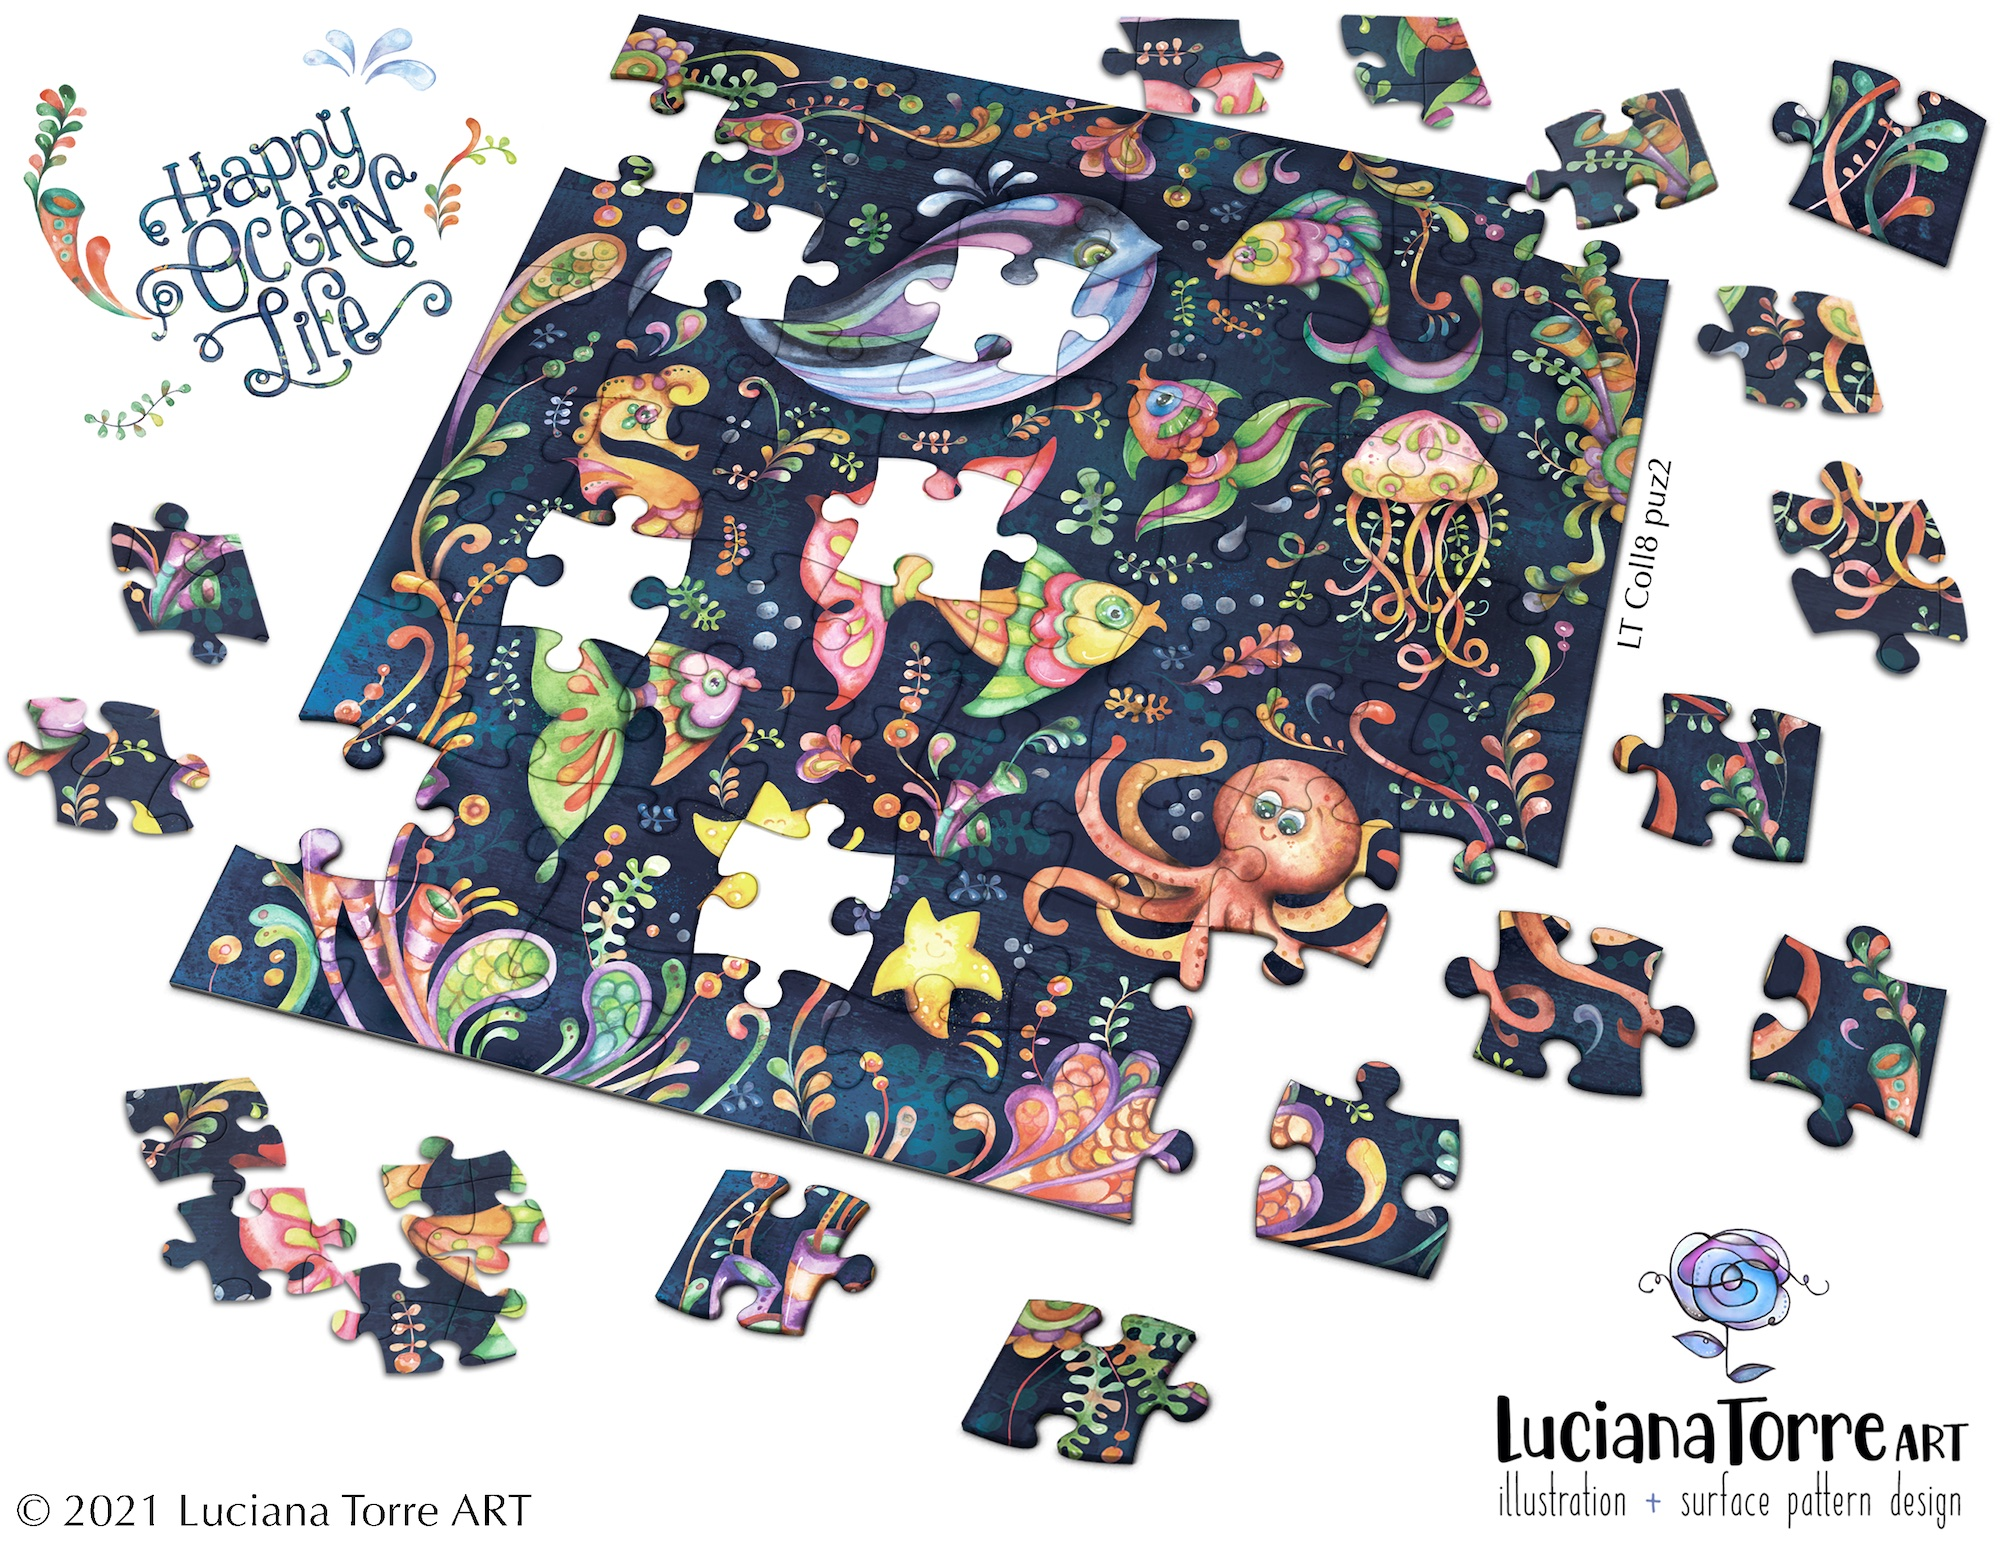 Luciana Torre Art puzzle illustration for licensing